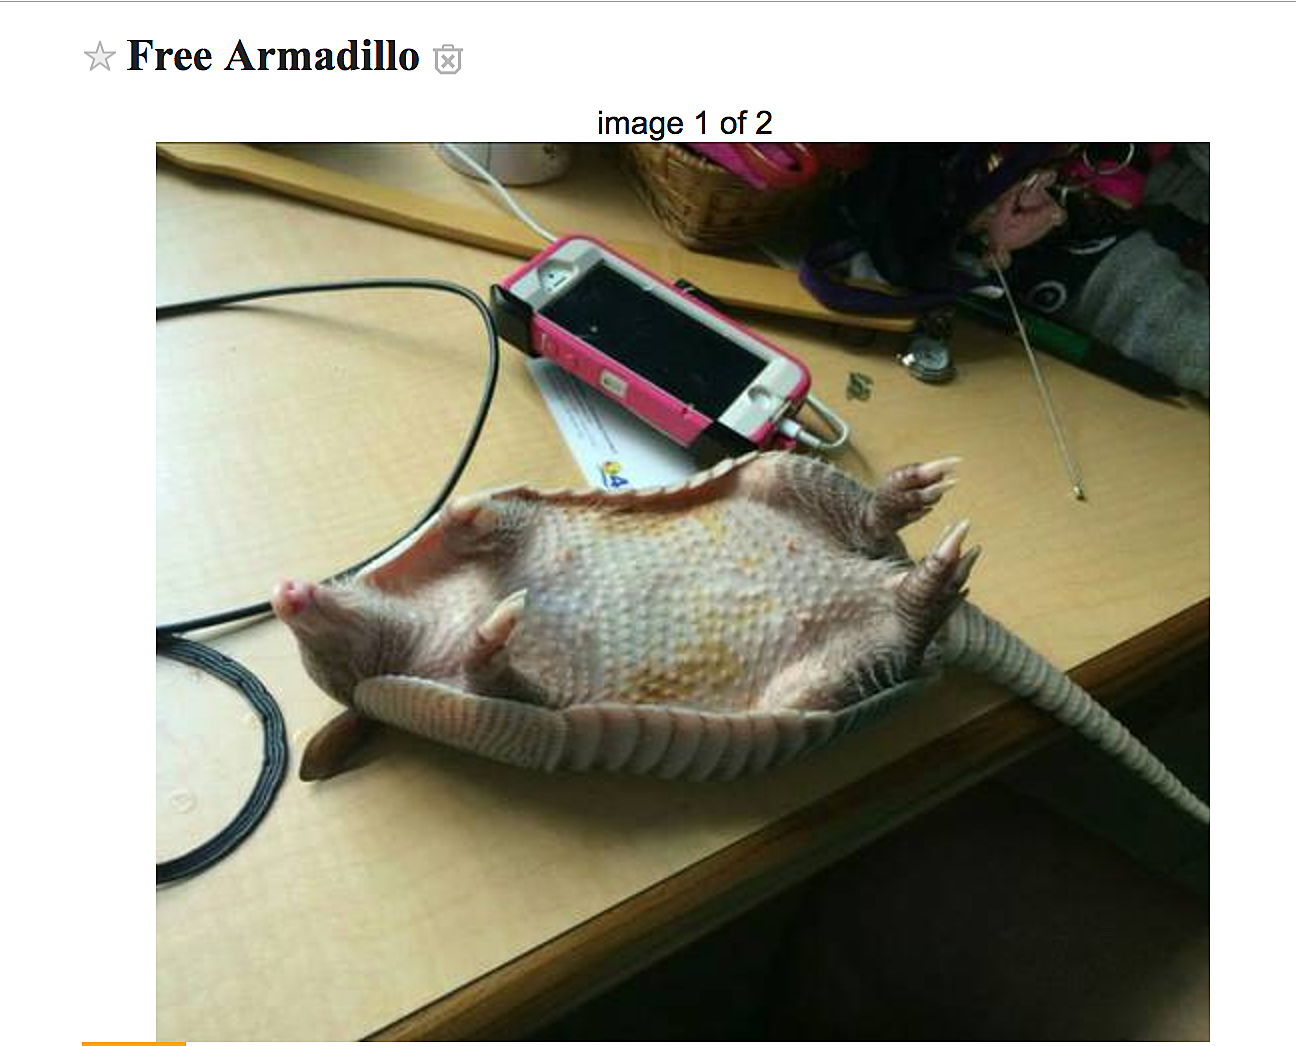 evansville craigslist, where you can find a free armadillo!